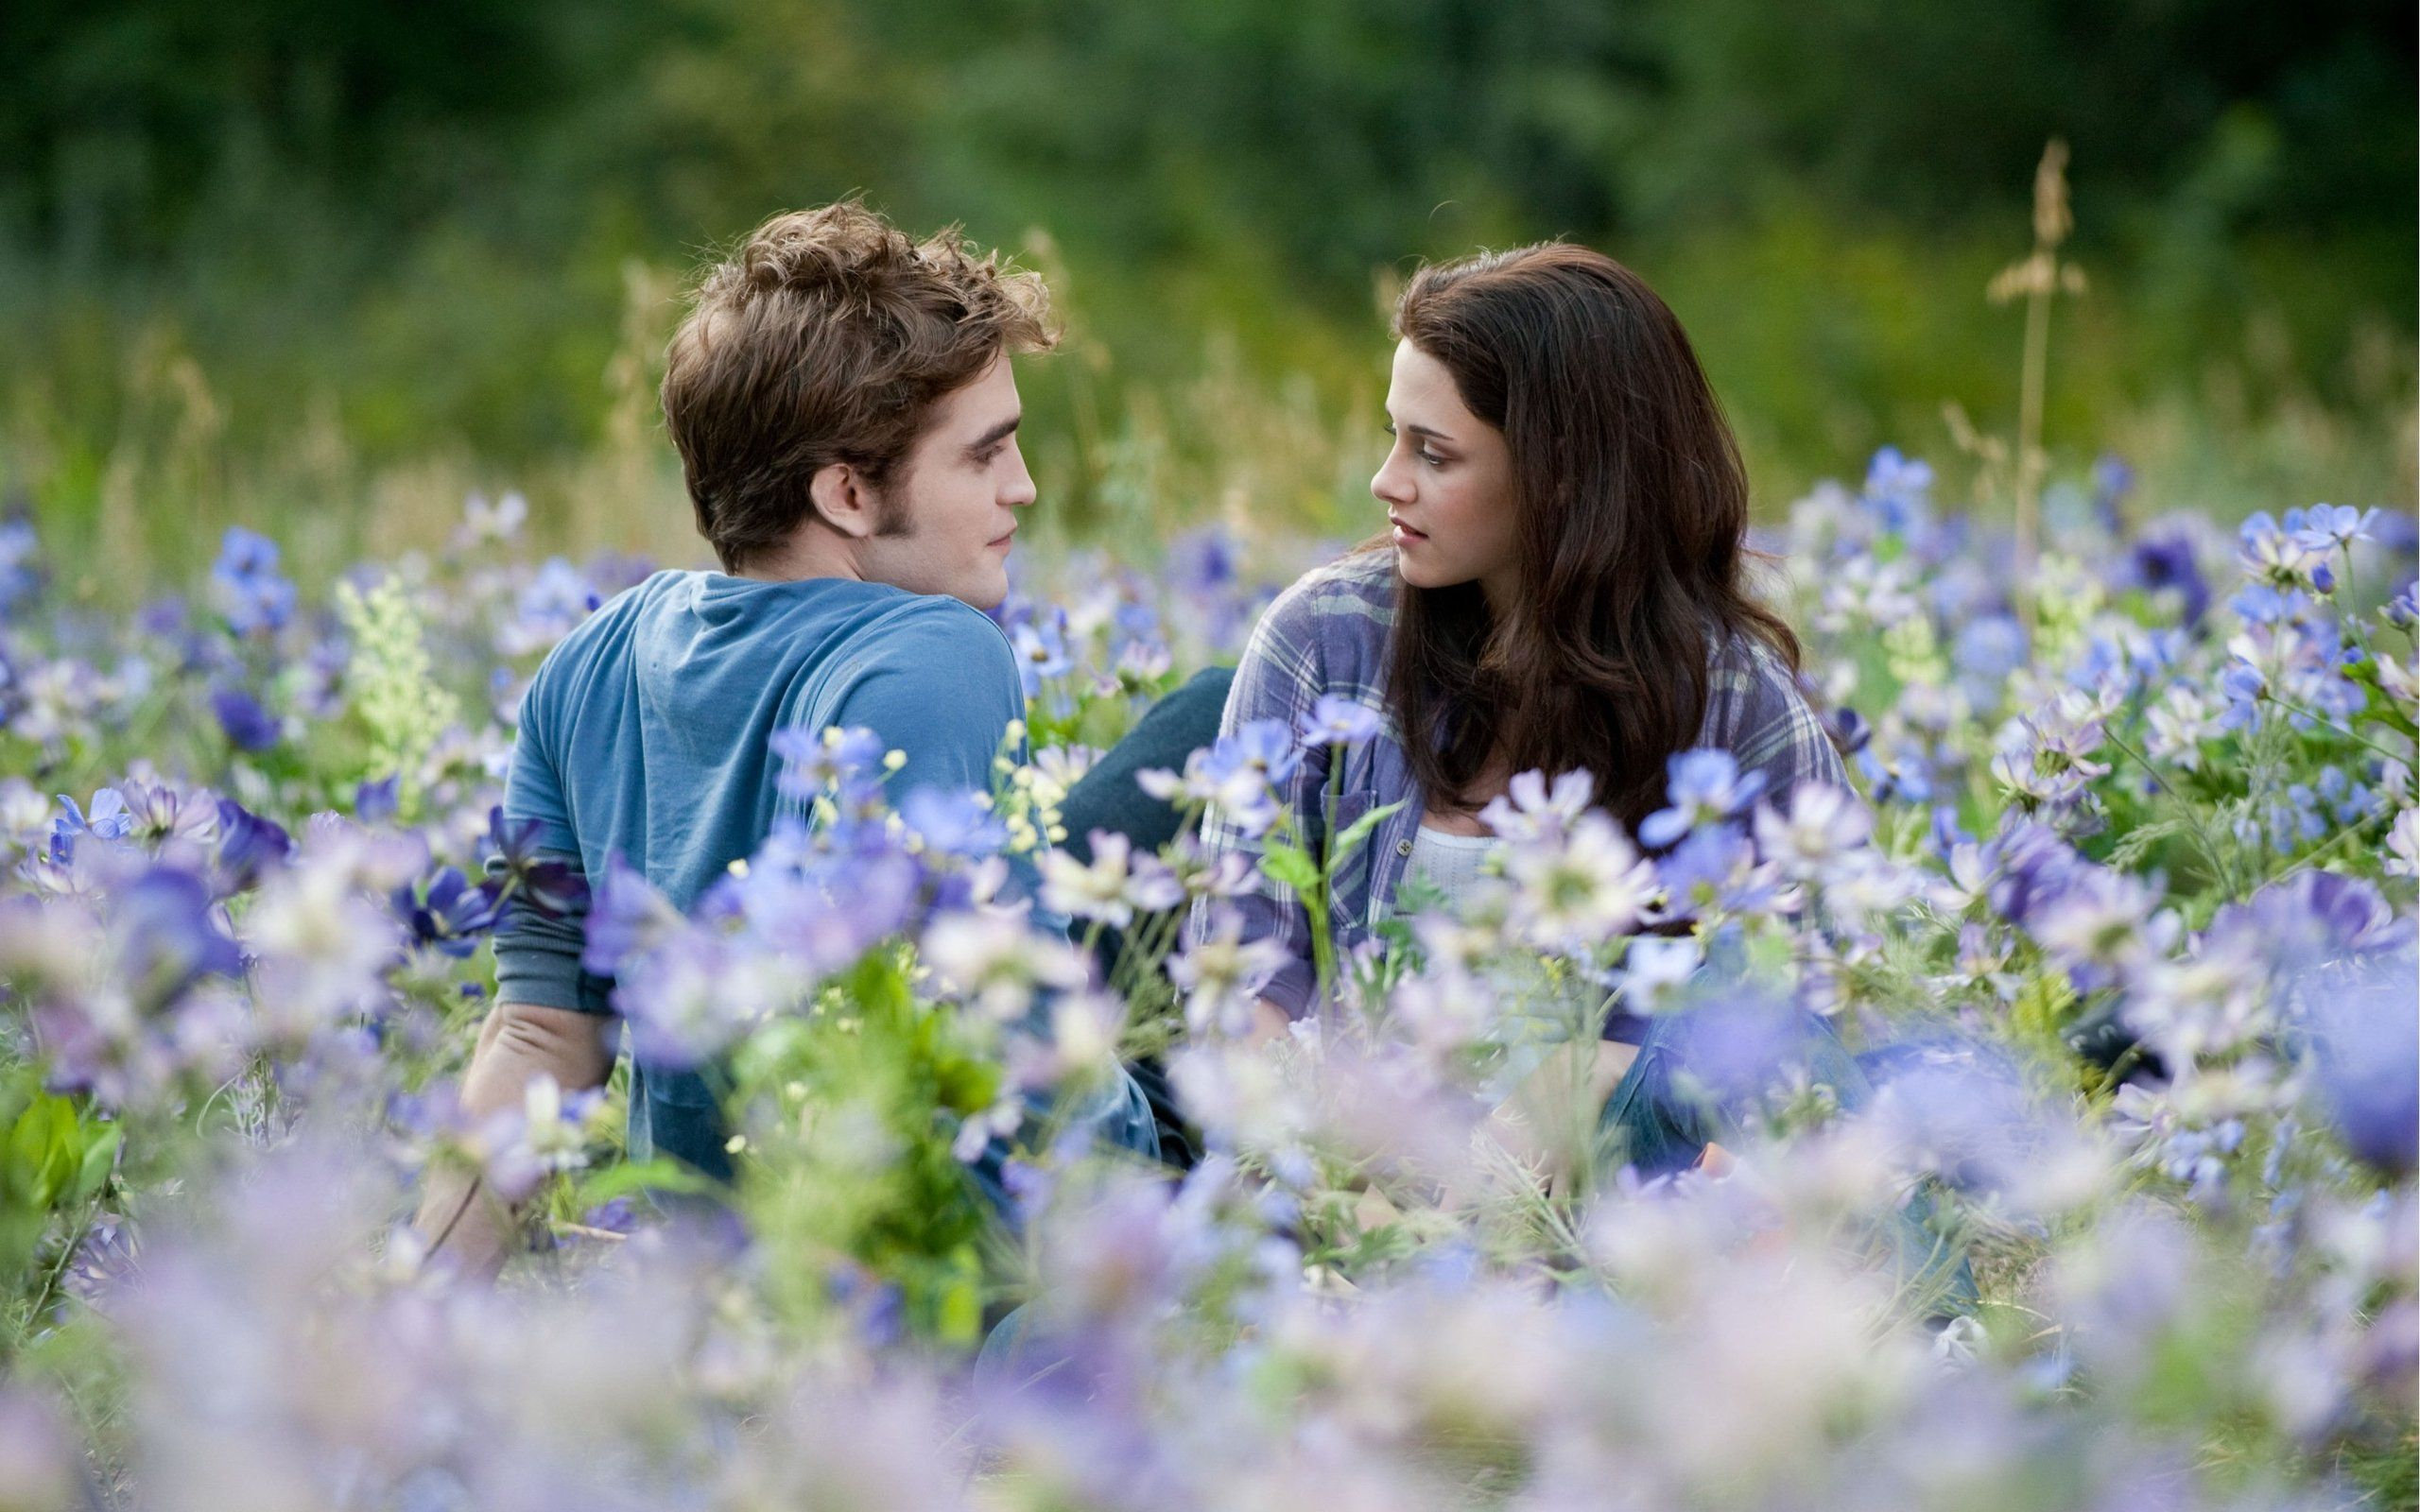 twilight bella and edward dating in real life Despite dating in real life for a long time,  can you think of any other things about edward and bella's relationship in twilight .